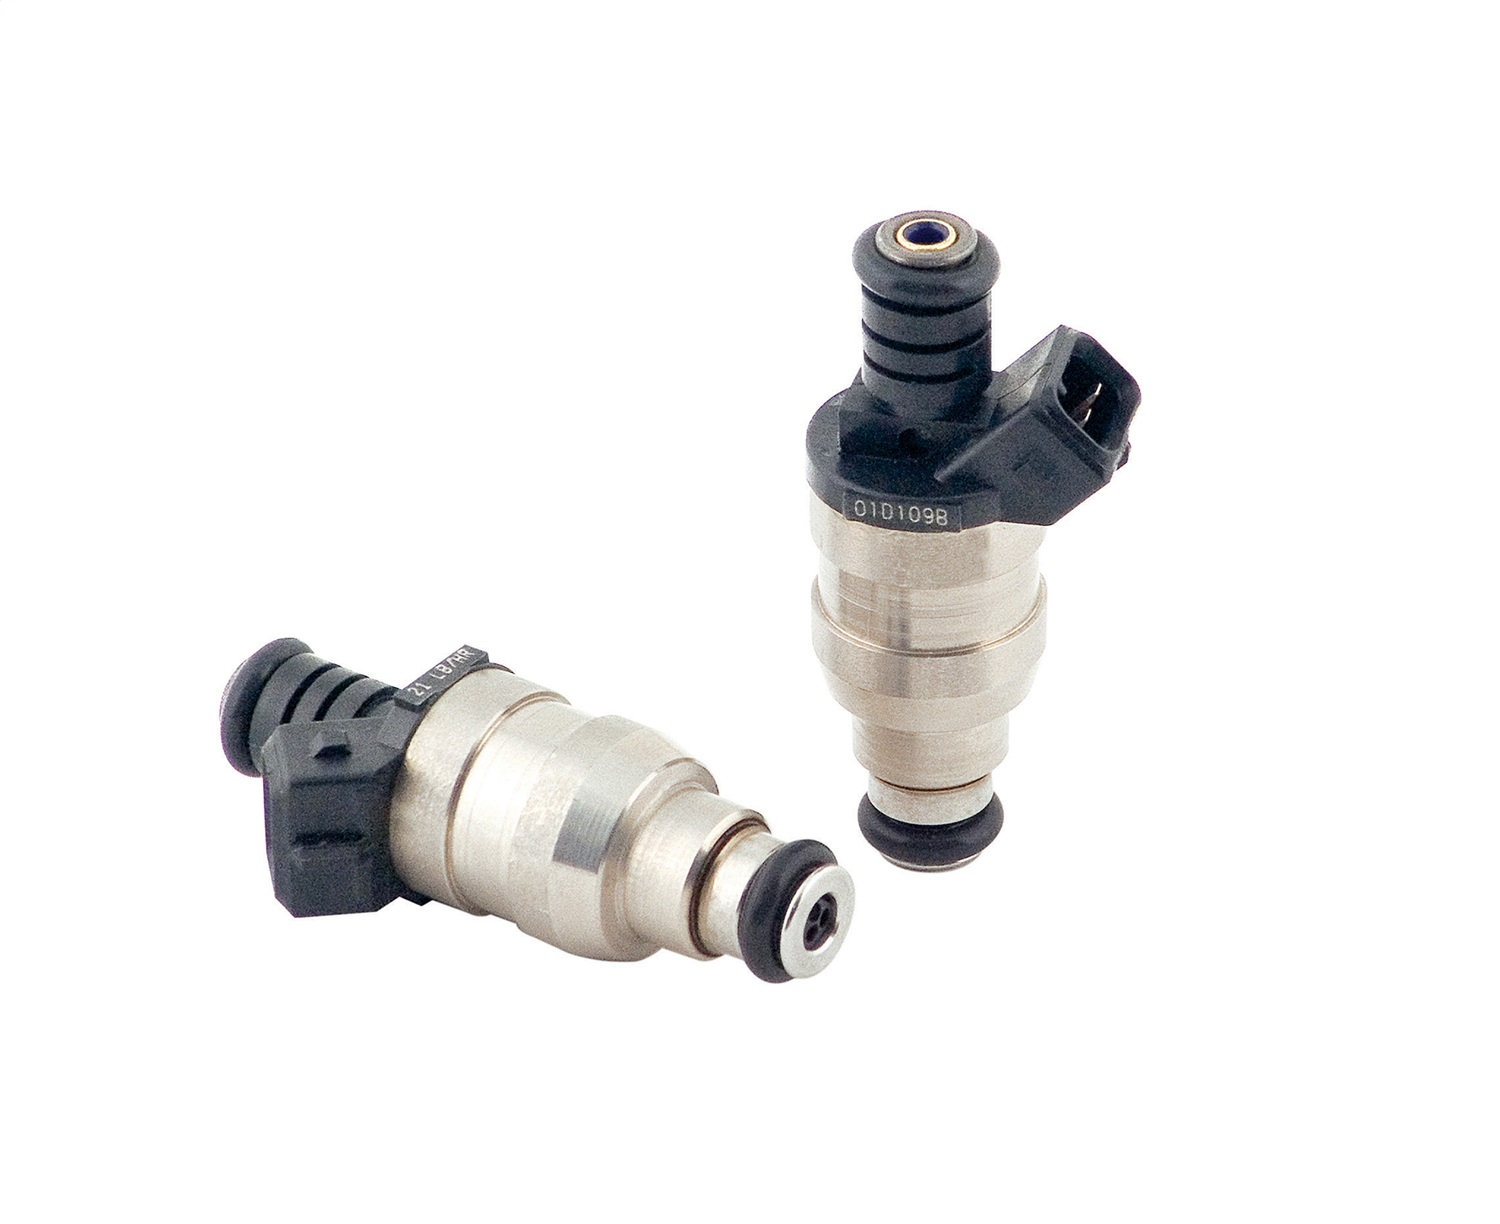 ACCEL 150136 PERF FUEL INJECTOR 36lb each